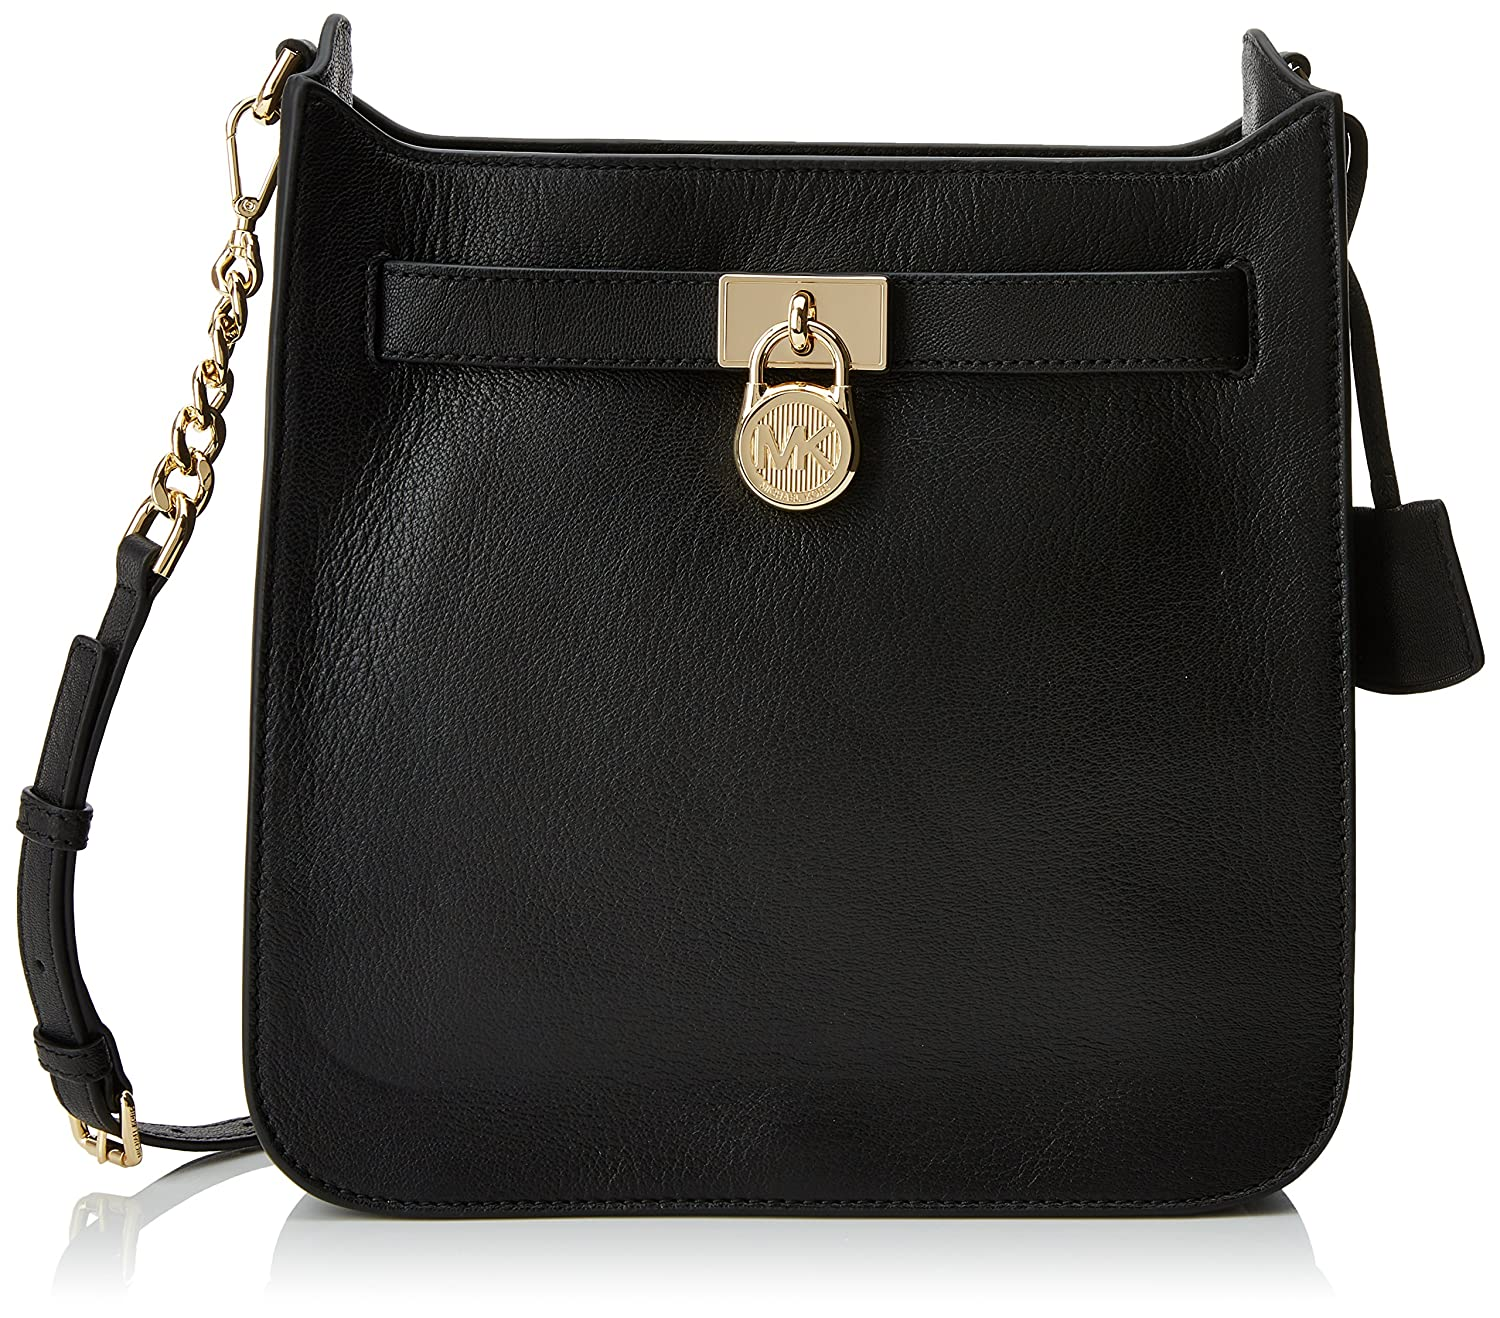 e66bf3cae7871 Michael Kors 30T7GHMM2L Womens Hamilton Cross-Body Bag Black (Black)   Amazon.co.uk  Shoes   Bags